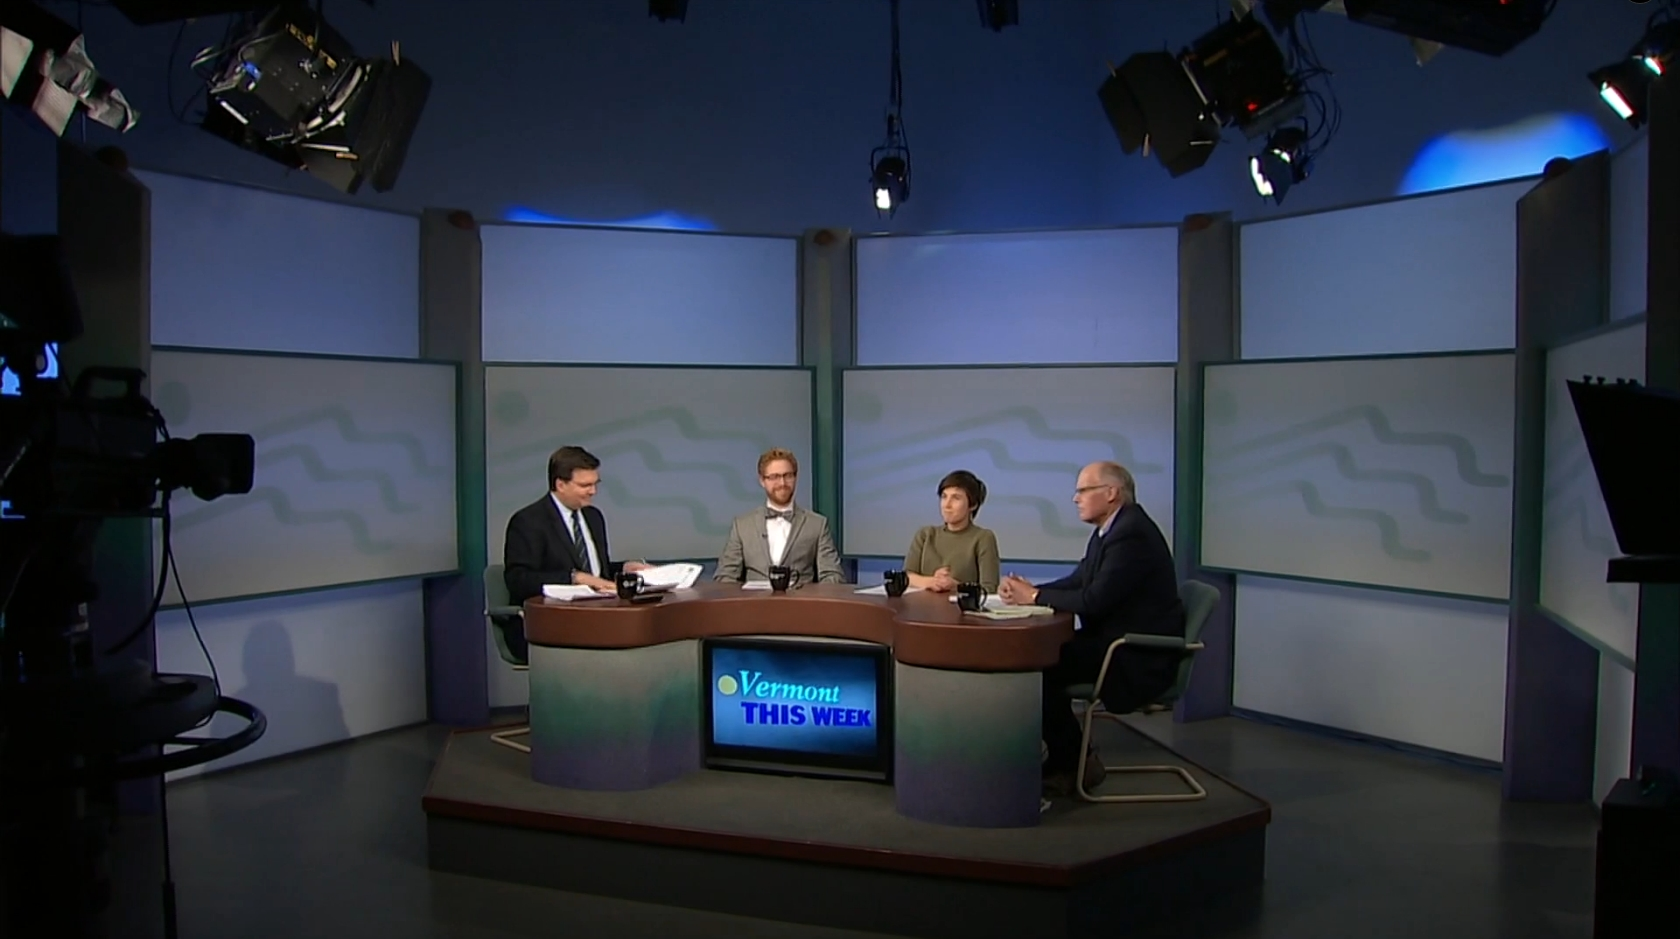 VERMONT THIS WEEK   Vermont this Week, in its 35th year, is a weekly   review of state news stories with a panel of journalists, hosted by Stewart Ledbetter.      Click the image to view